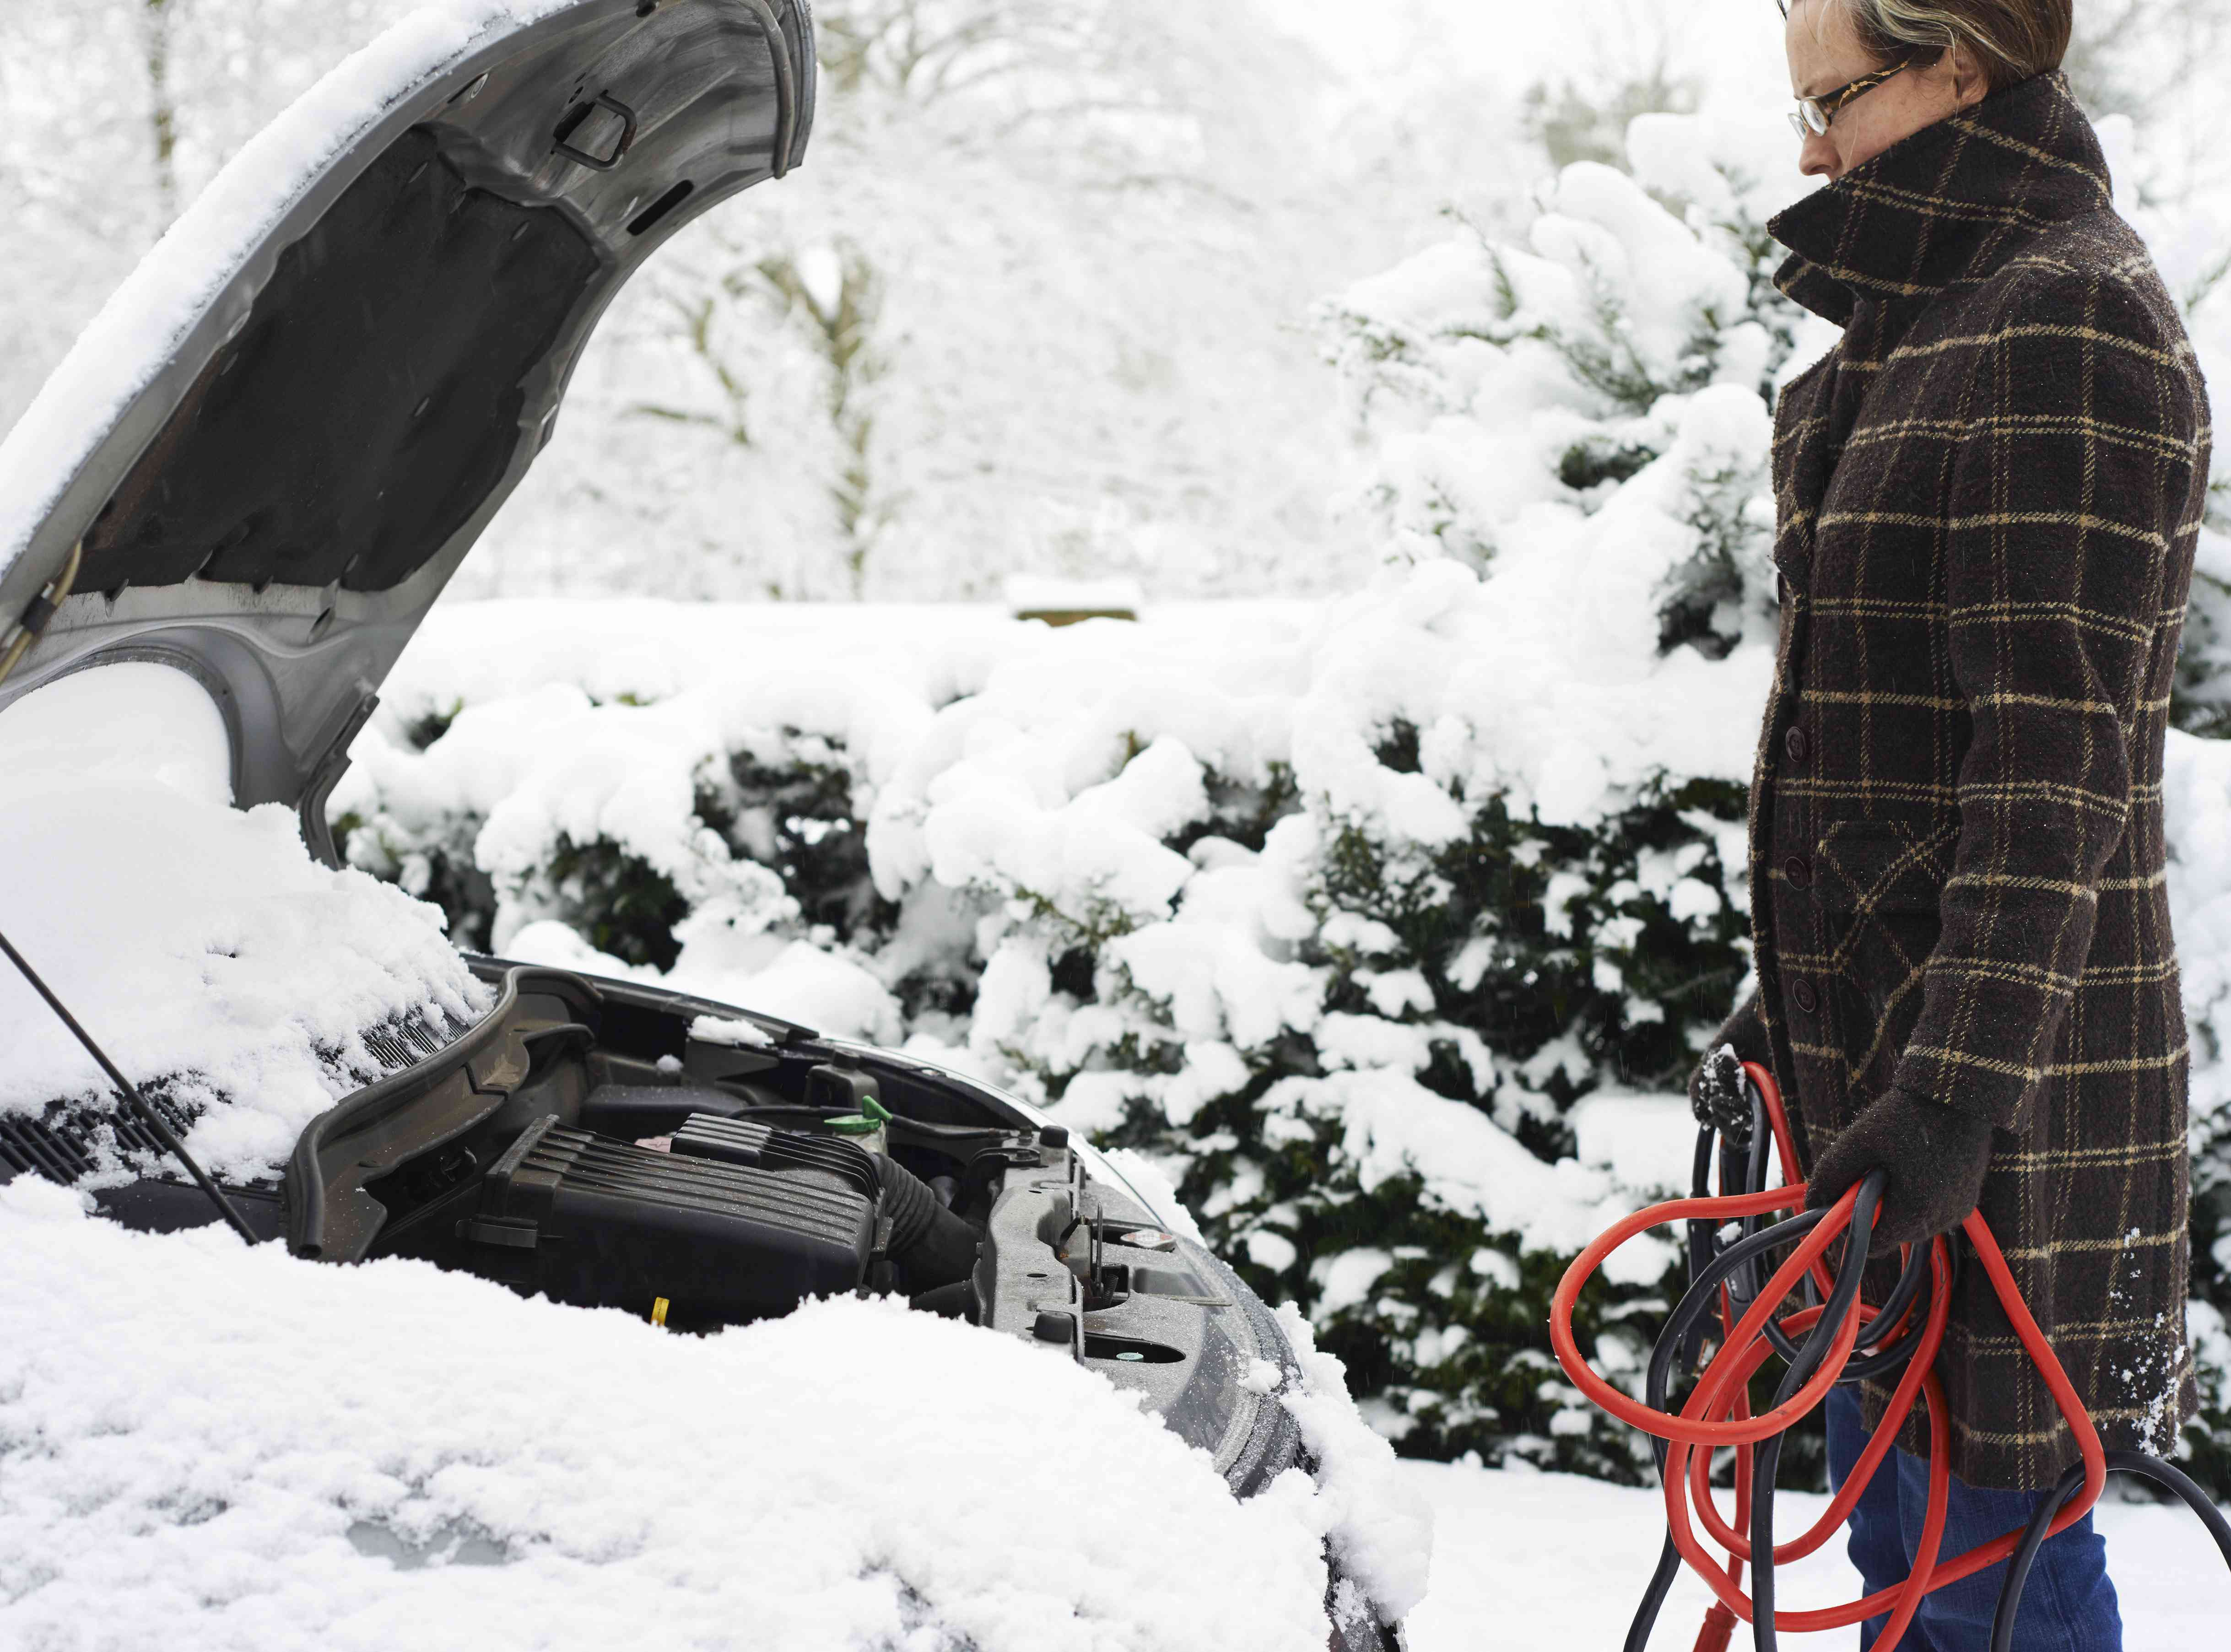 A driver holding jumper cables